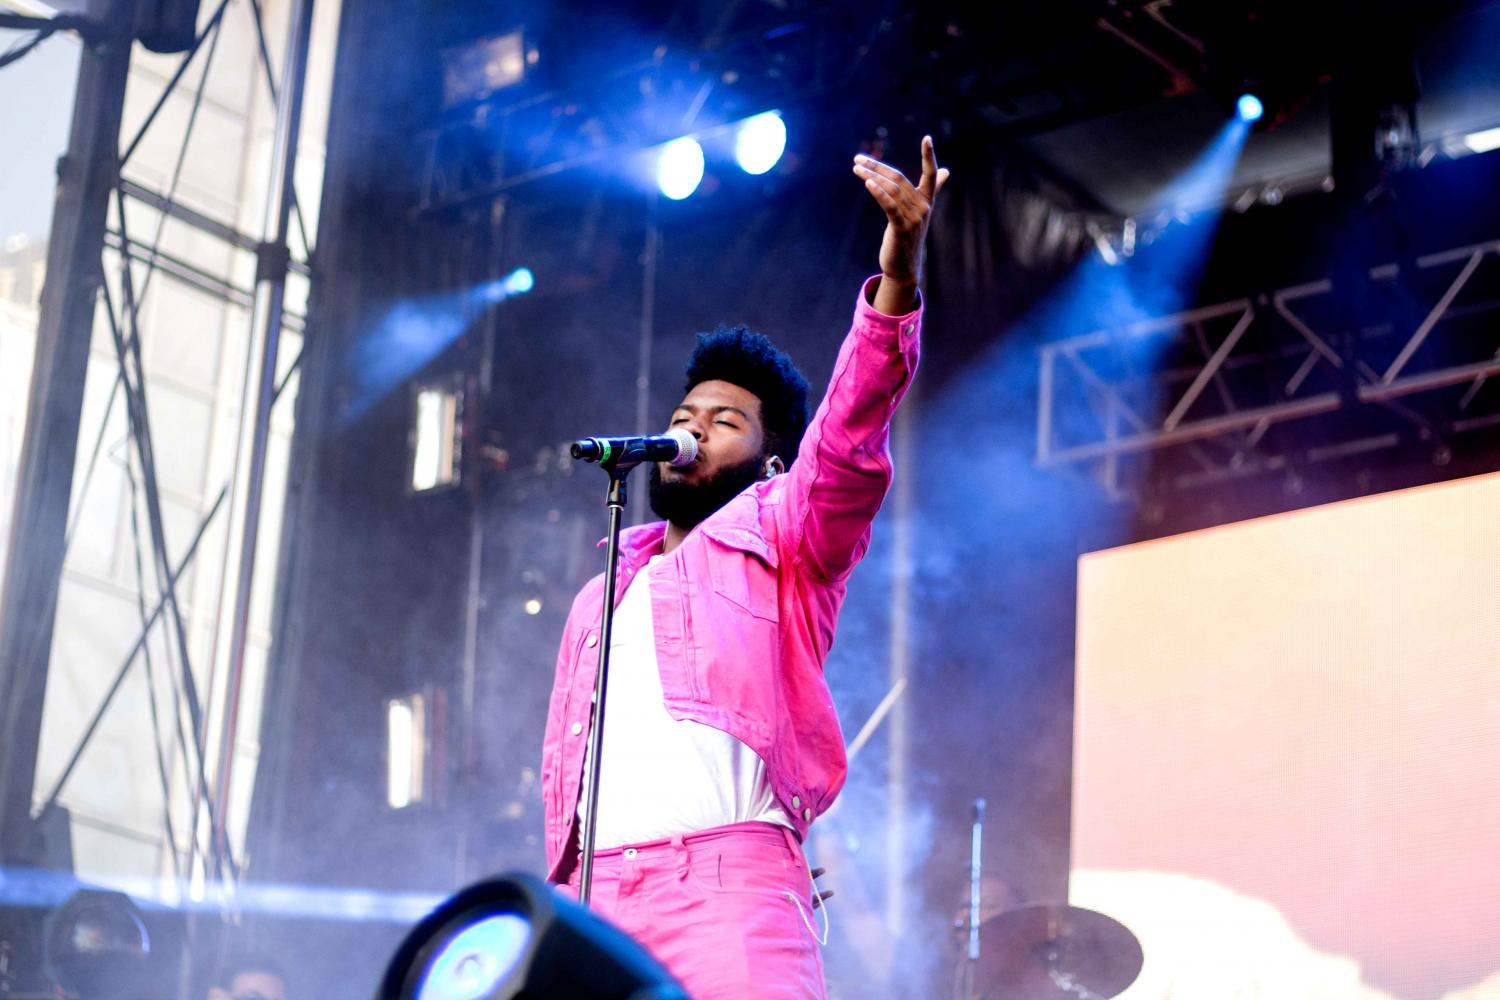 Khalid+performs+on+the+second+day+of+Neon+Desert+Music+Festival+2017+on+Sunday%2C+May+28.+